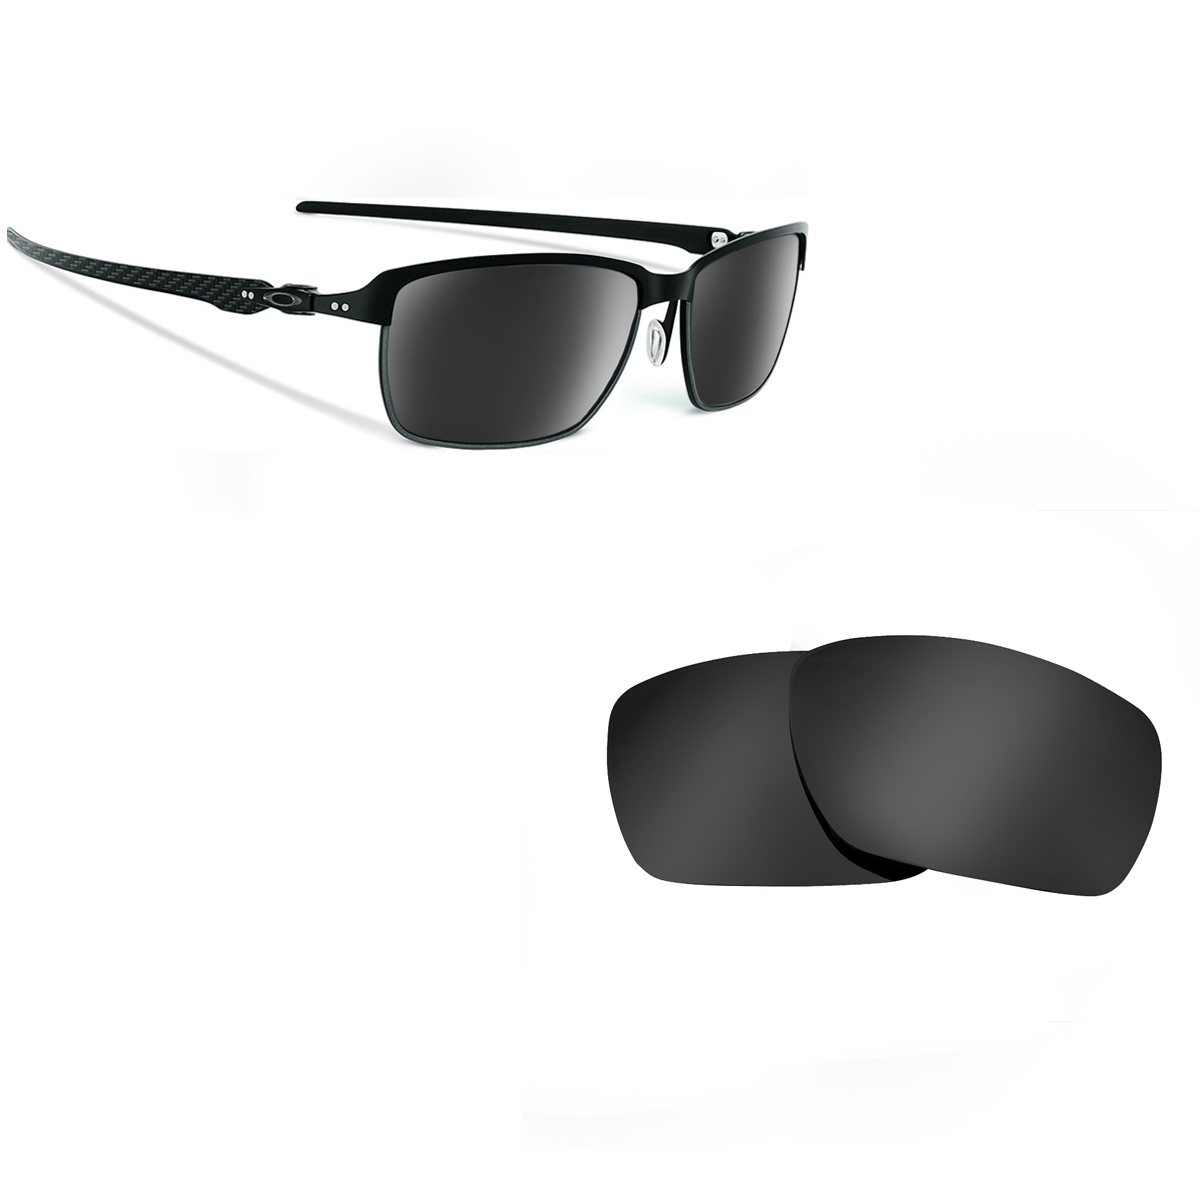 b06862e7a36 Tinfoil Carbon Replacement Lenses by SEEK OPTICS to fit OAKLEY ...